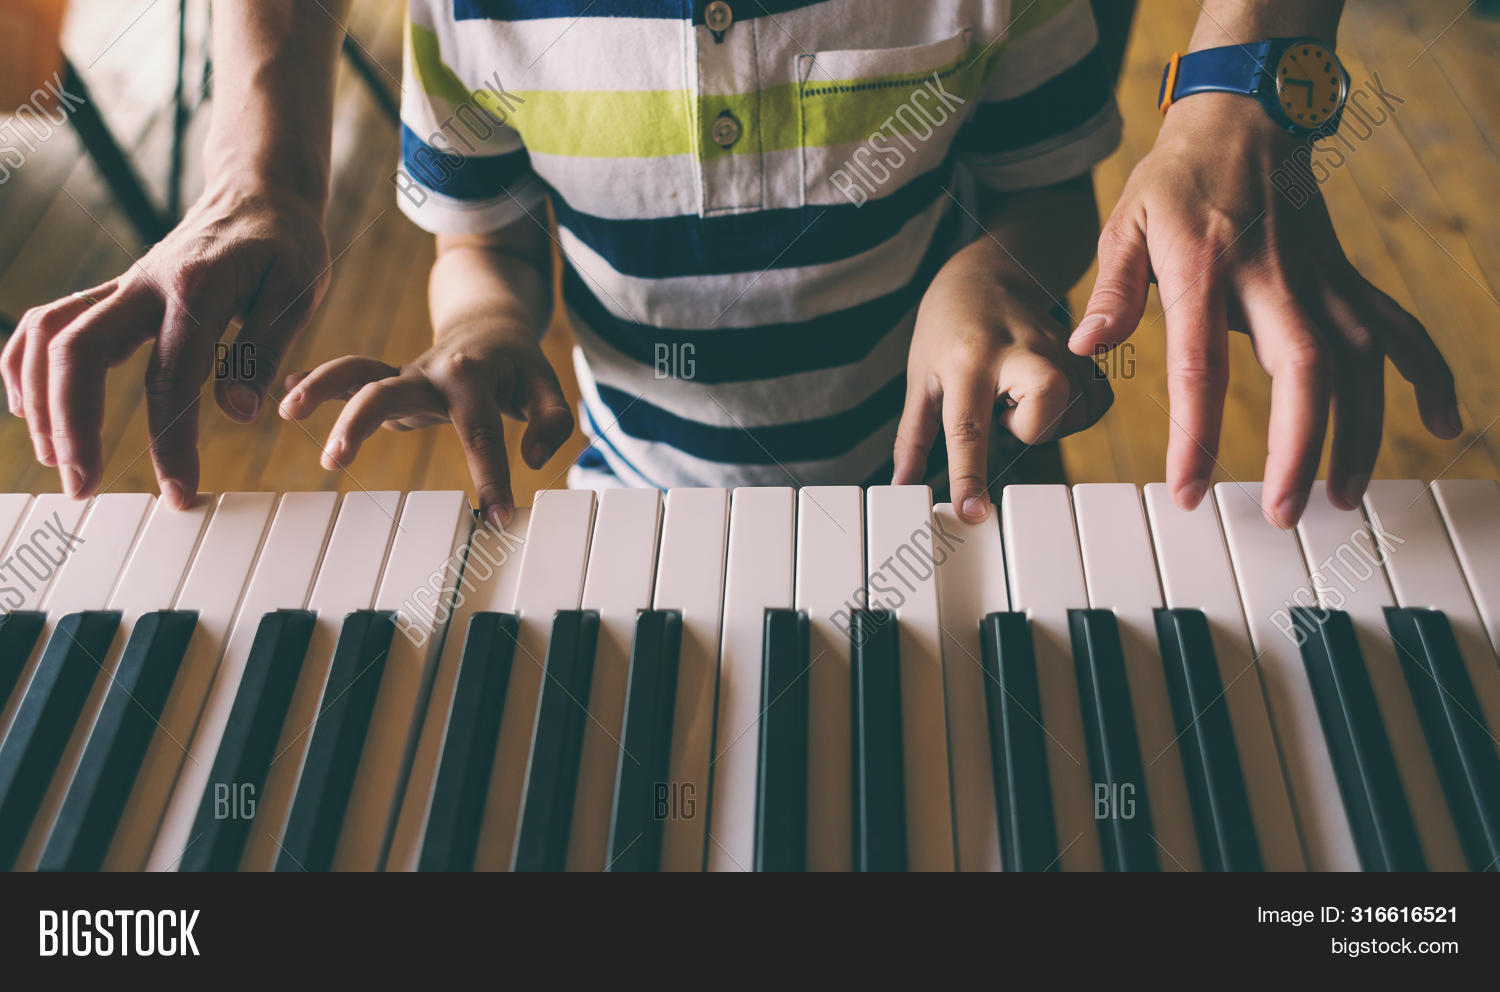 adult,art,boy,caucasian,child,class,classic,coach,duet,education,female,finger,hand,home,indoors,instruction,instructor,instrument,key,keyboard,kid,learn,learning,lesson,mother,music,musical,musician,people,person,pianist,piano,play,player,practice,practicing,school,son,sound,student,study,studying,teach,teacher,together,tutor,tutorial,two,woman,young